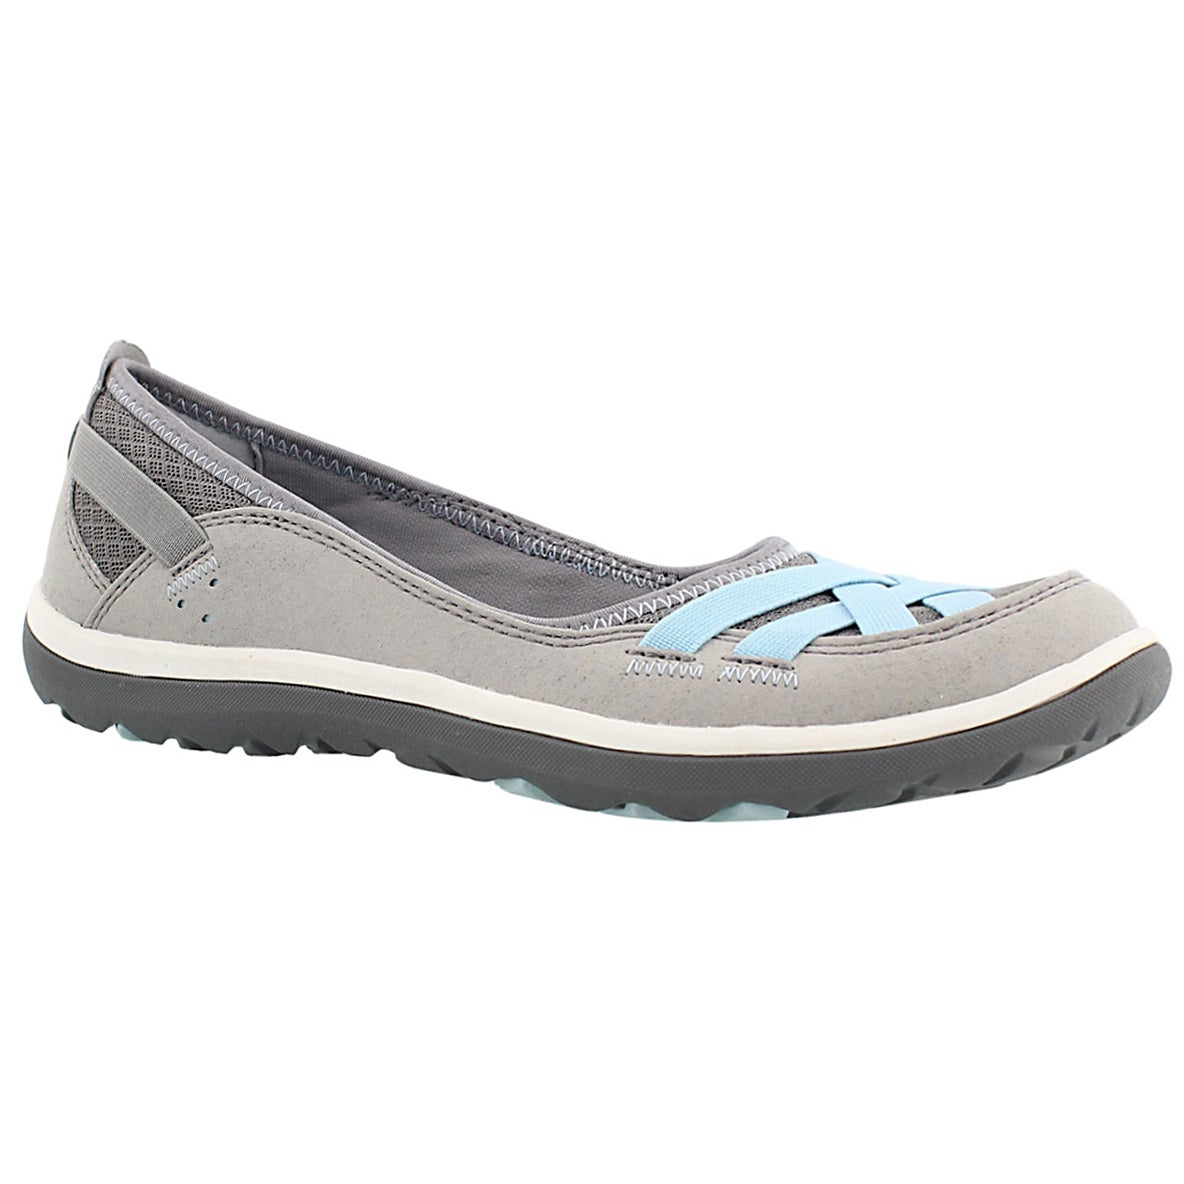 Women's ARIA PUMP grey slip on casual shoes